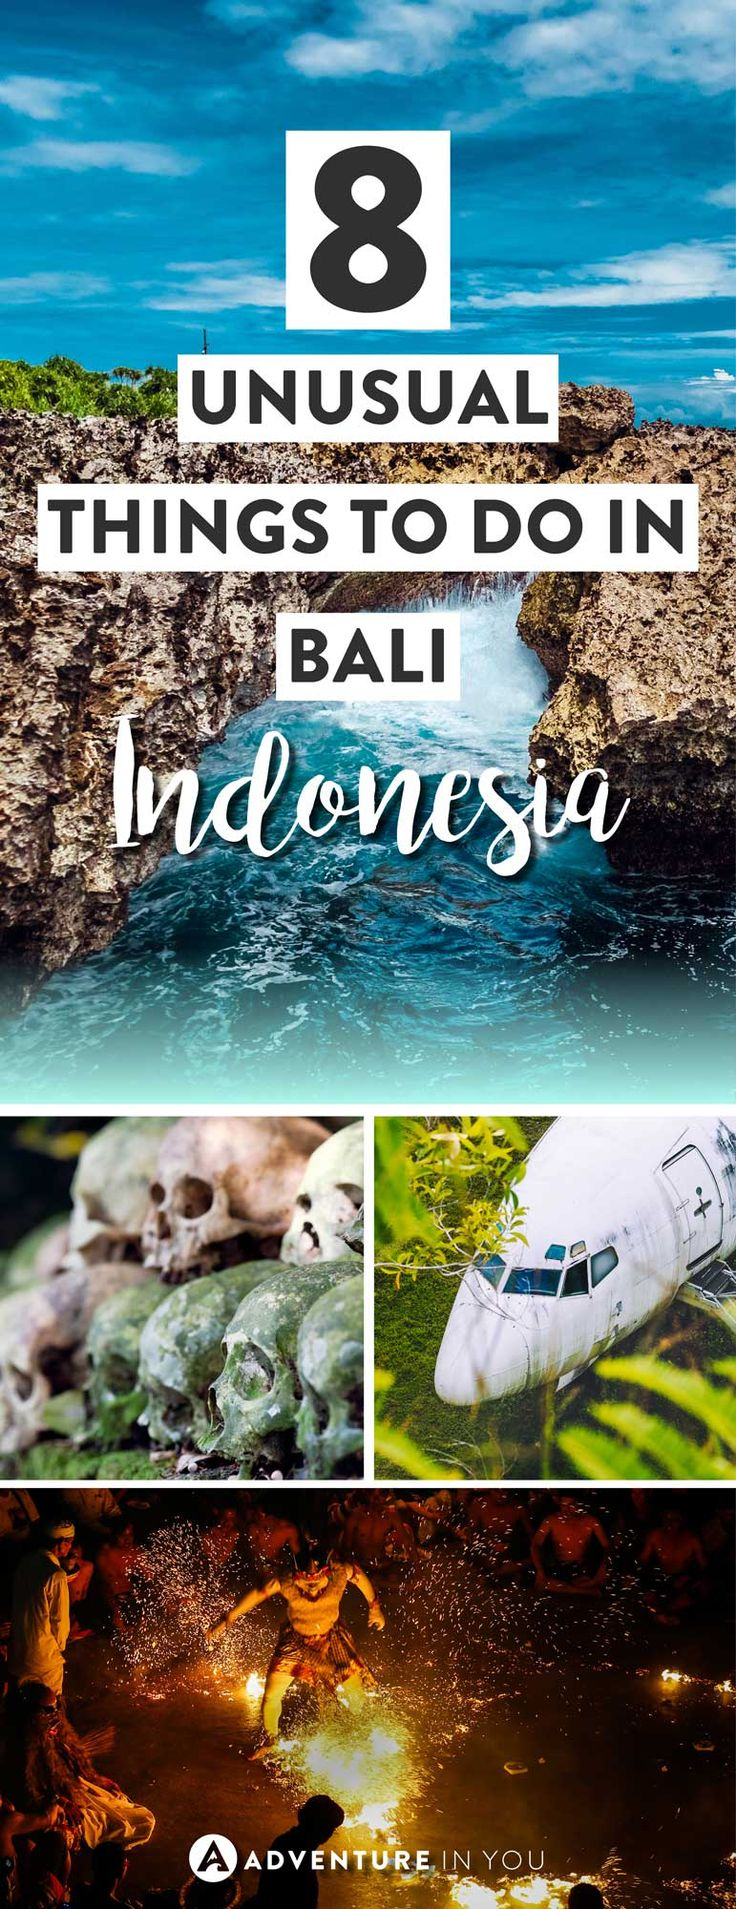 Bali Indonesia | Heading to Bali? Go off the beaten path by adding these unusual things to do in Bali to your trip itinerary. From mesmerising fire shows to underwater temples, these things to do to bali article is the perfect guide to planning your trip to Bali Indonesia #bali